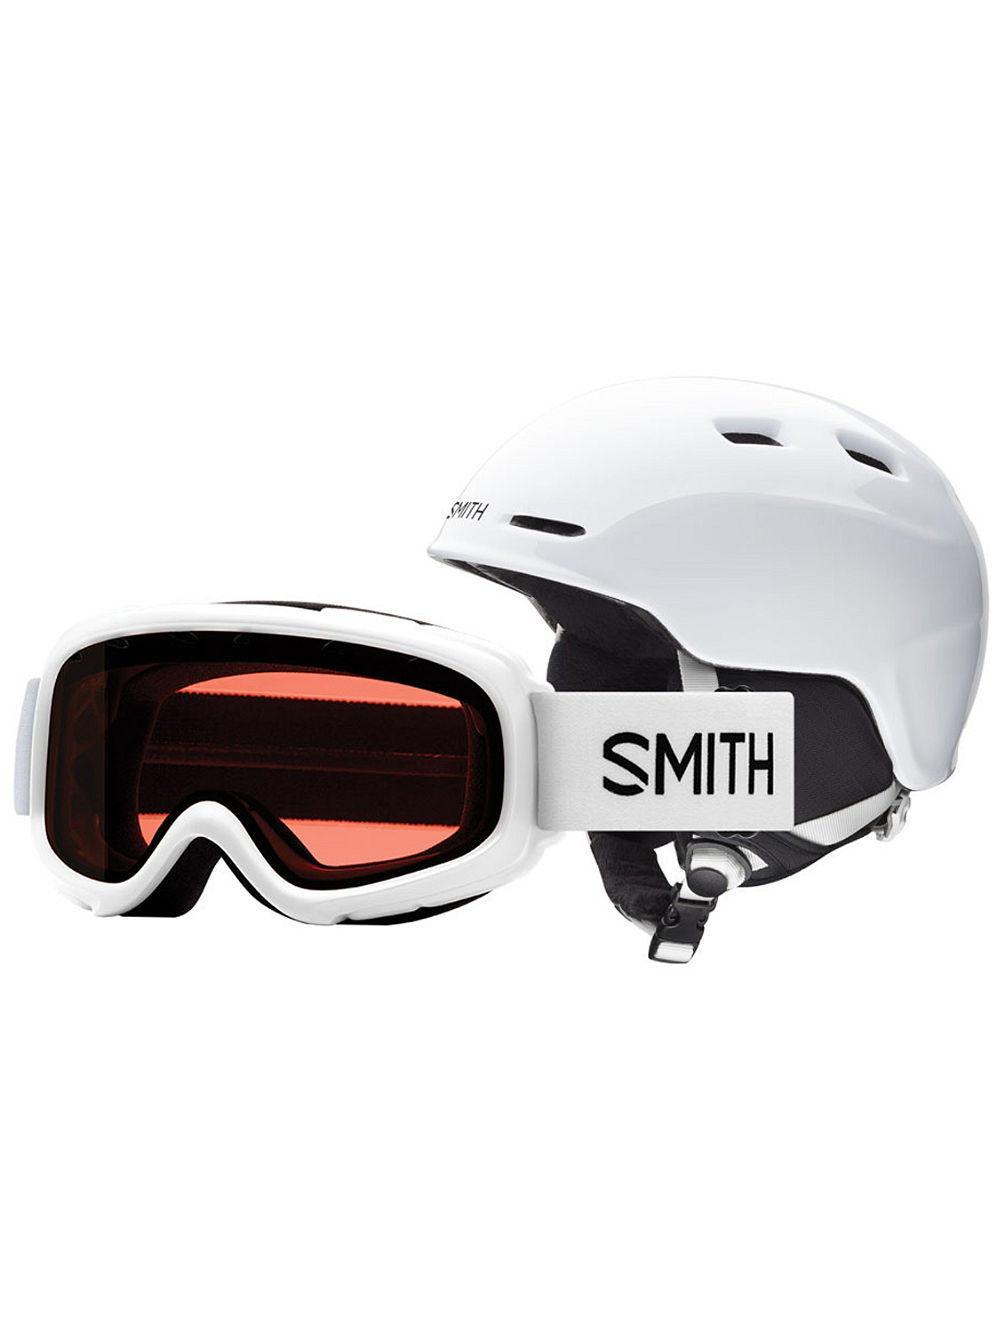 Zoom Jr/Gambler Snowboard Helmet Youth Youth